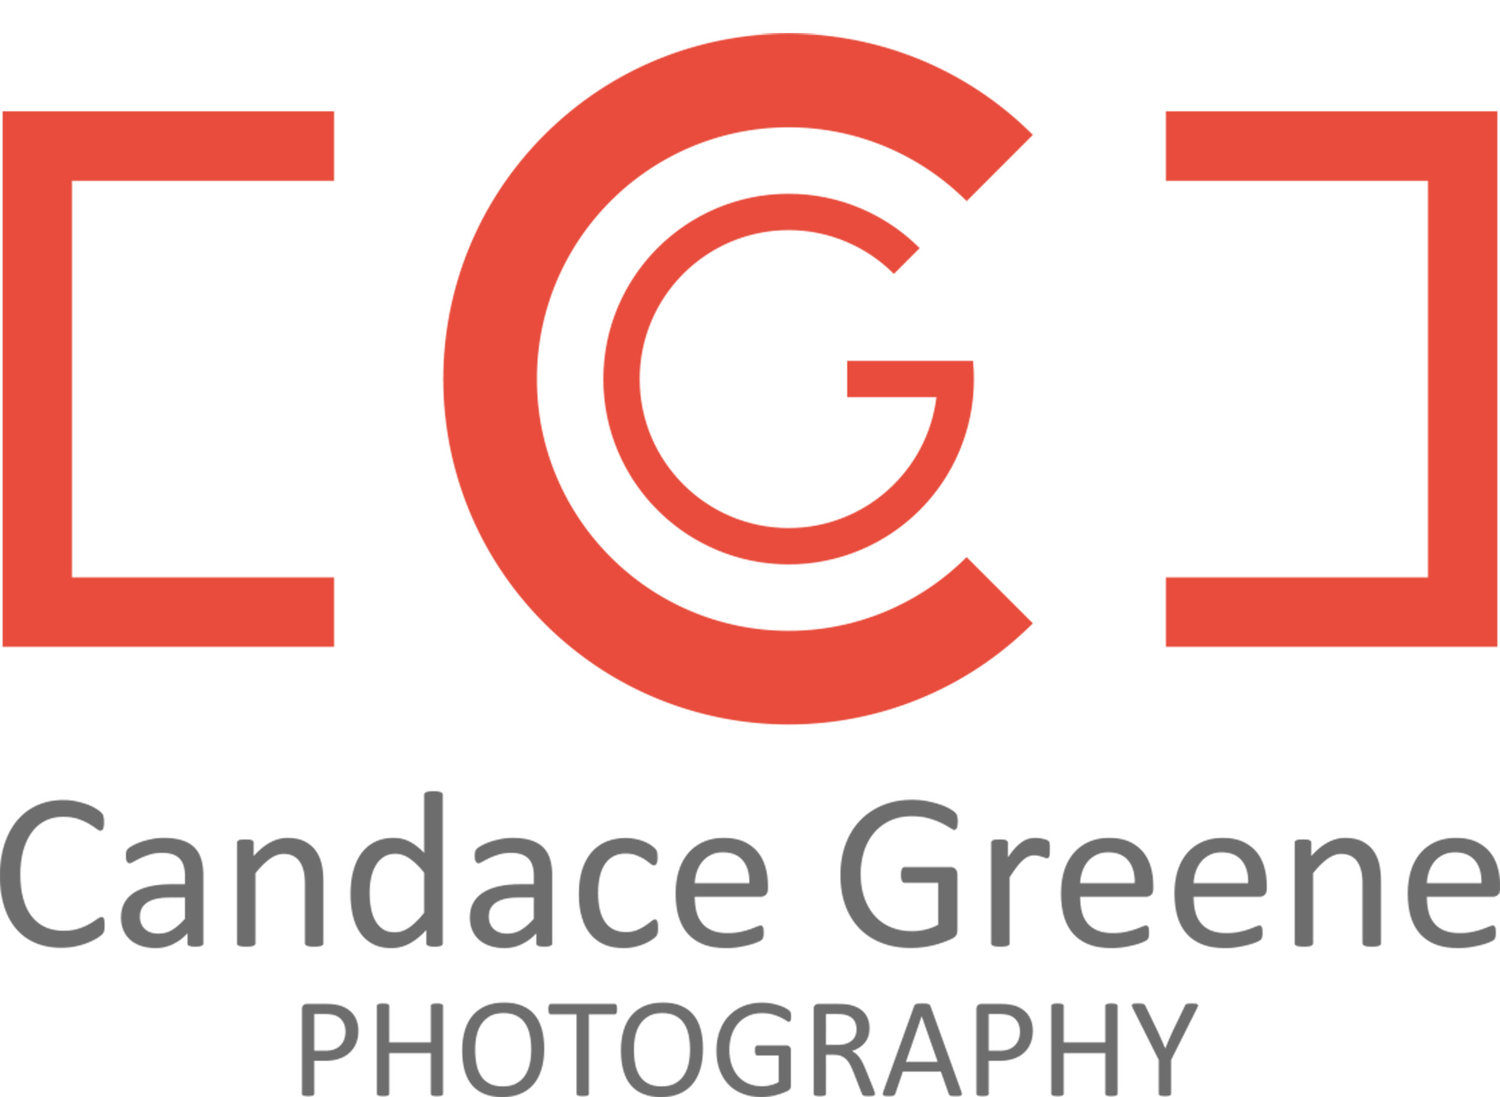 Candace Greene Photography